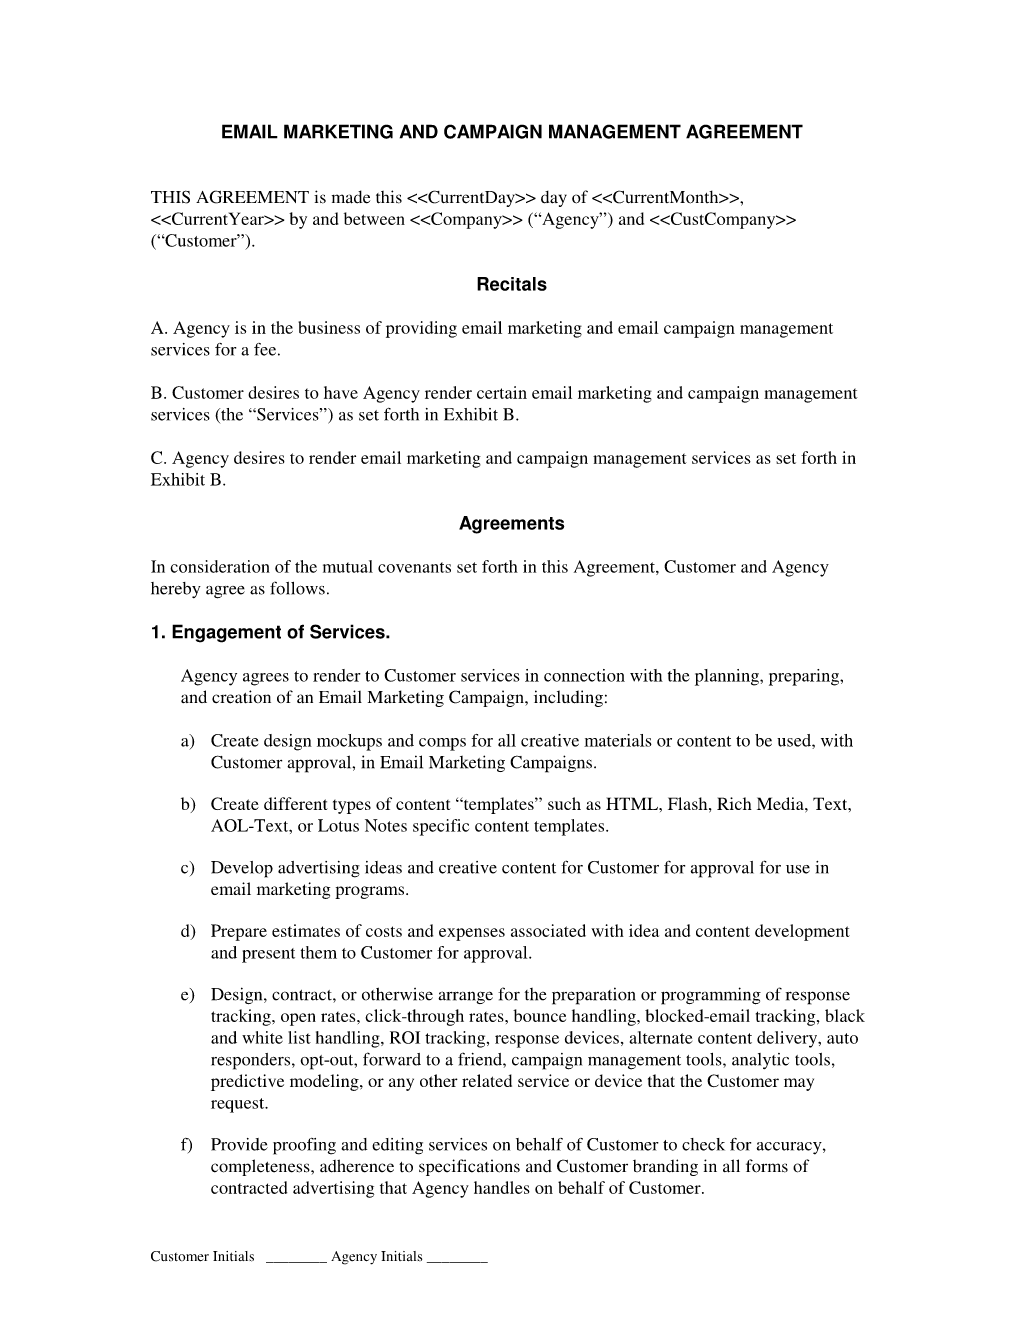 Joint Marketing Agreement Template Will Help Establish A Formal  Relationship Between Two Parties Who Wish To Engage In Efforts  Contract Sample Between Two Parties